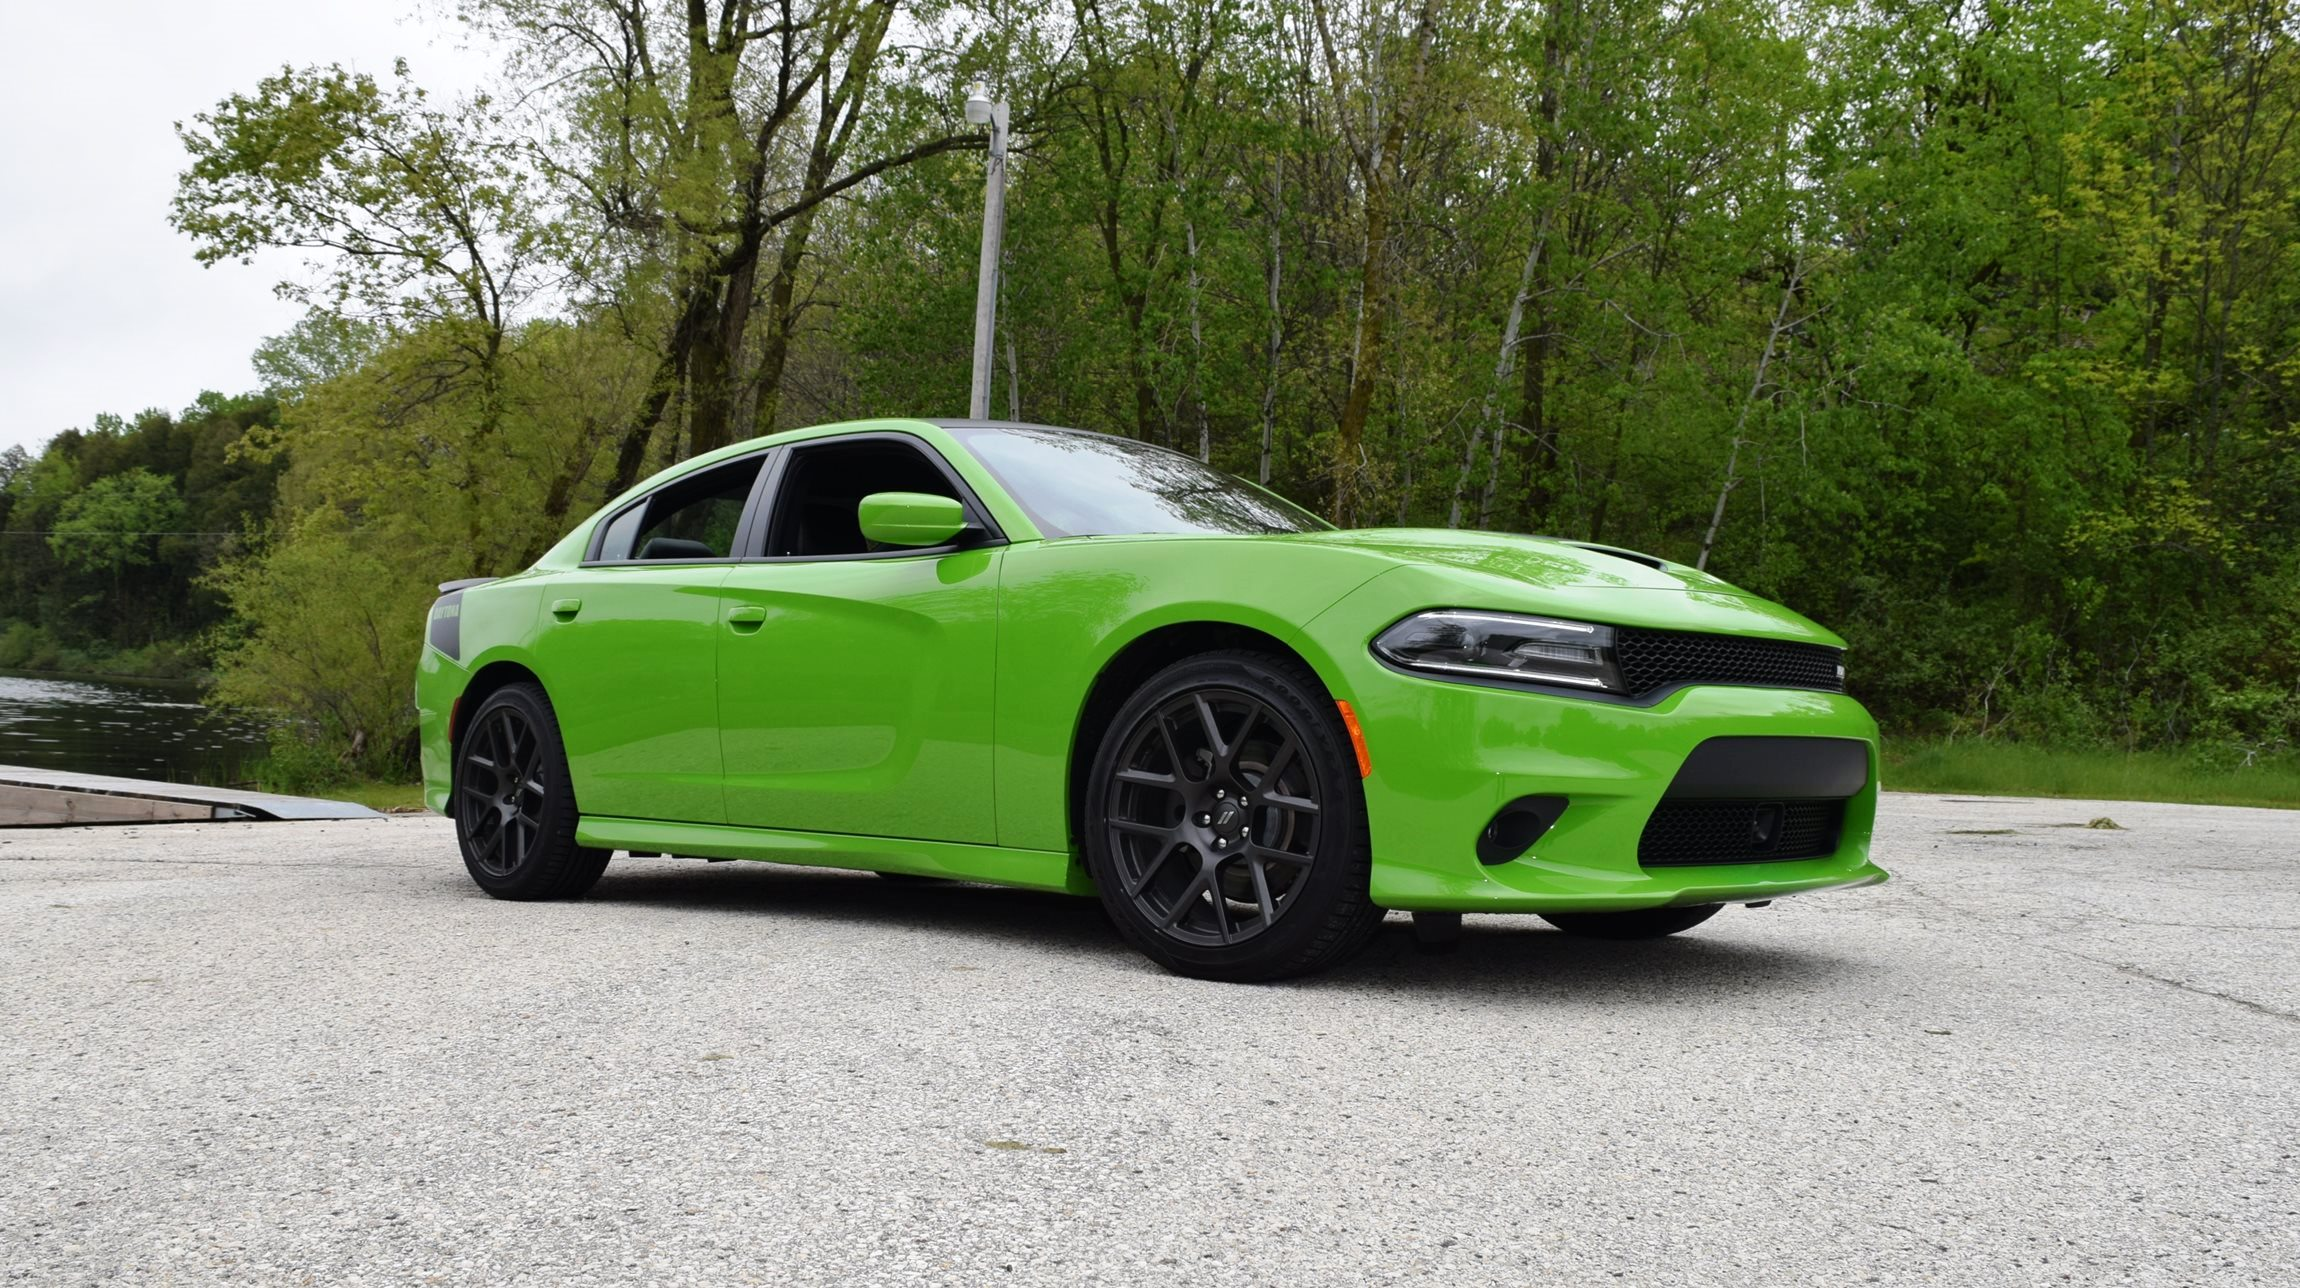 2017 Dodge Charger DAYTONA 8